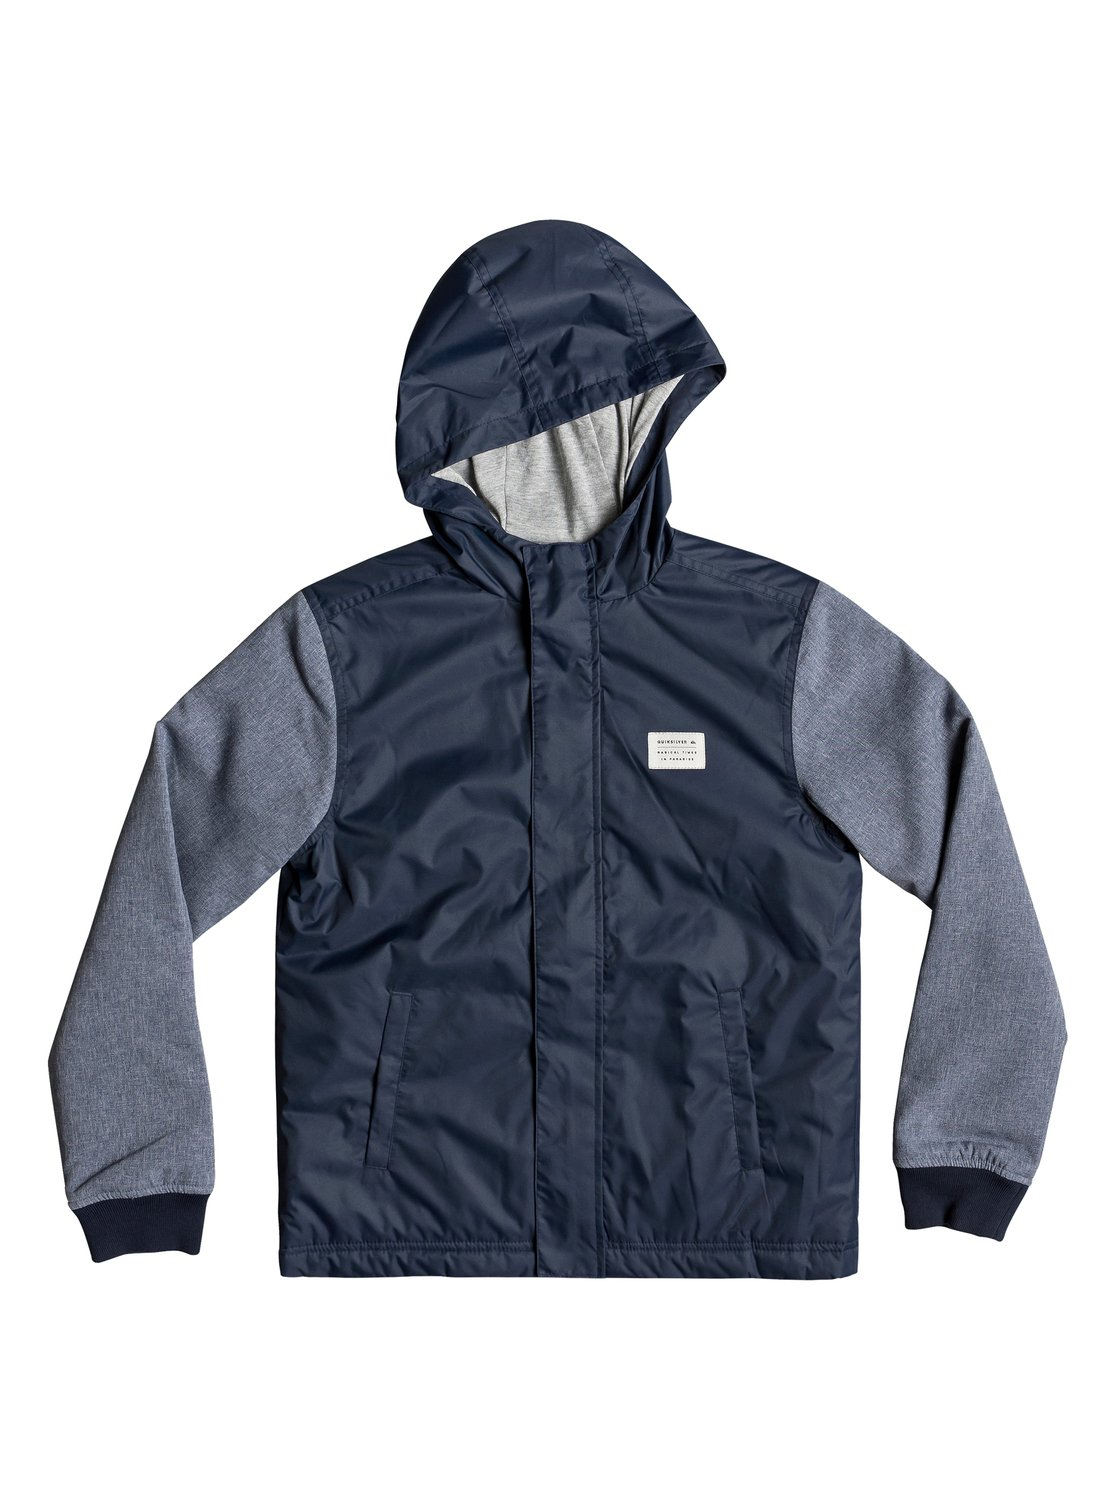 bf23adb1a Vagabond Heart - Hooded Jacket for Boys 8-16 3613374303584